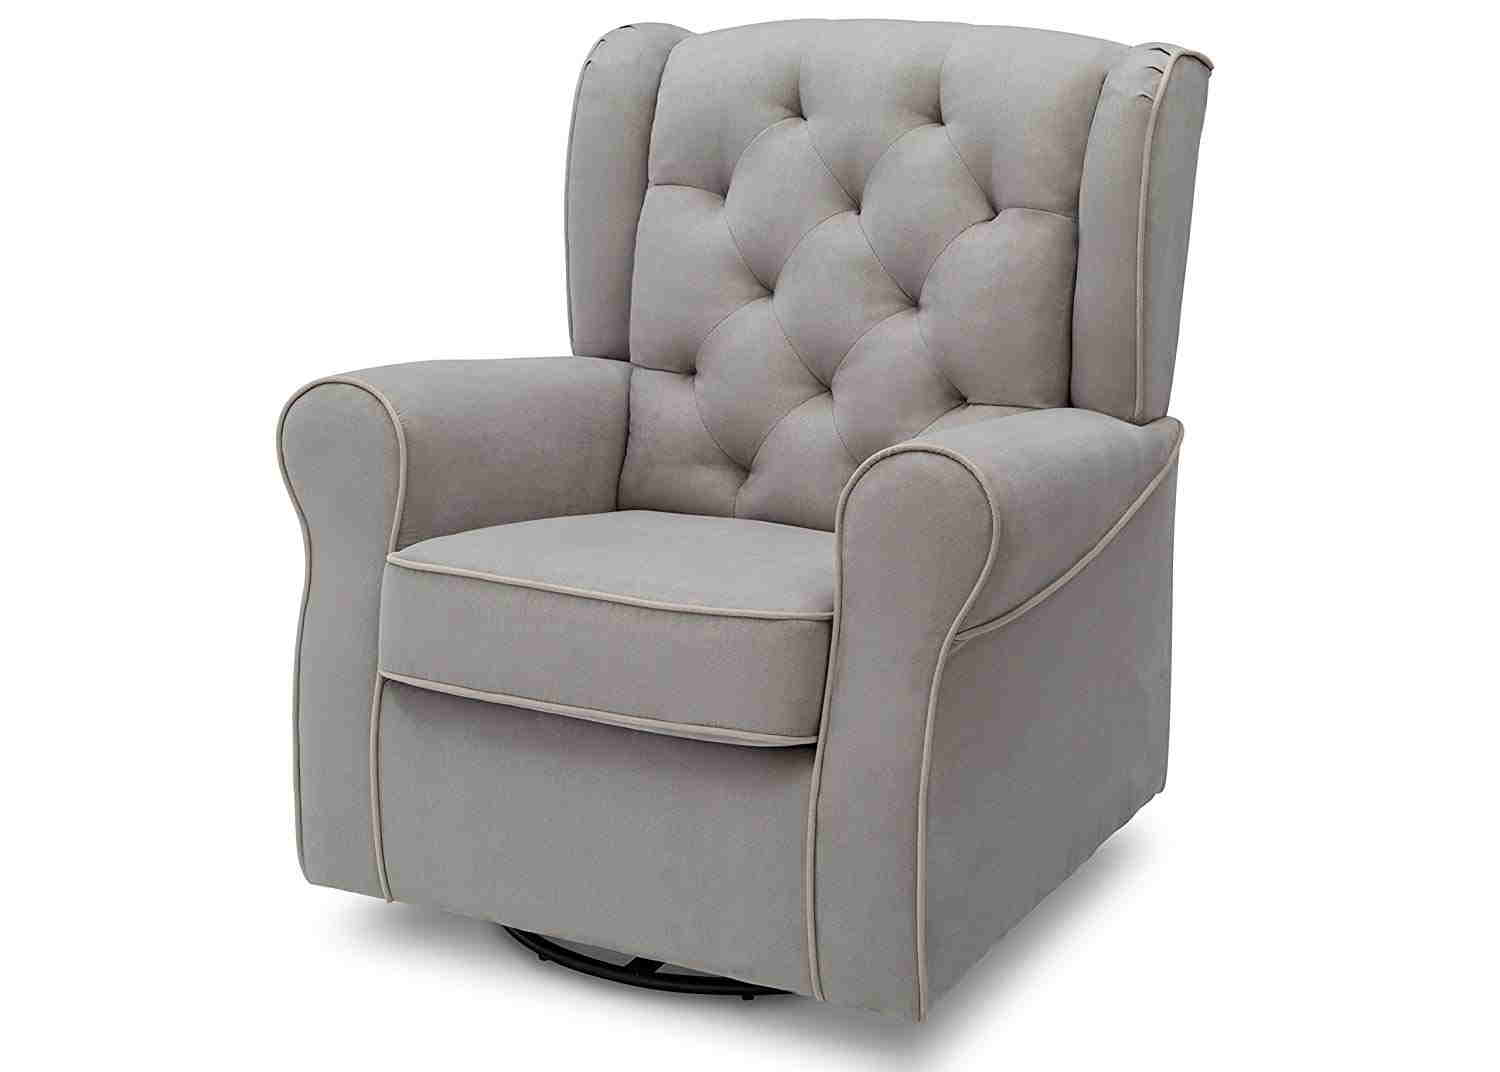 Top 10 Swivel And Reclining Chairs 2019 Reviews Amp Guide